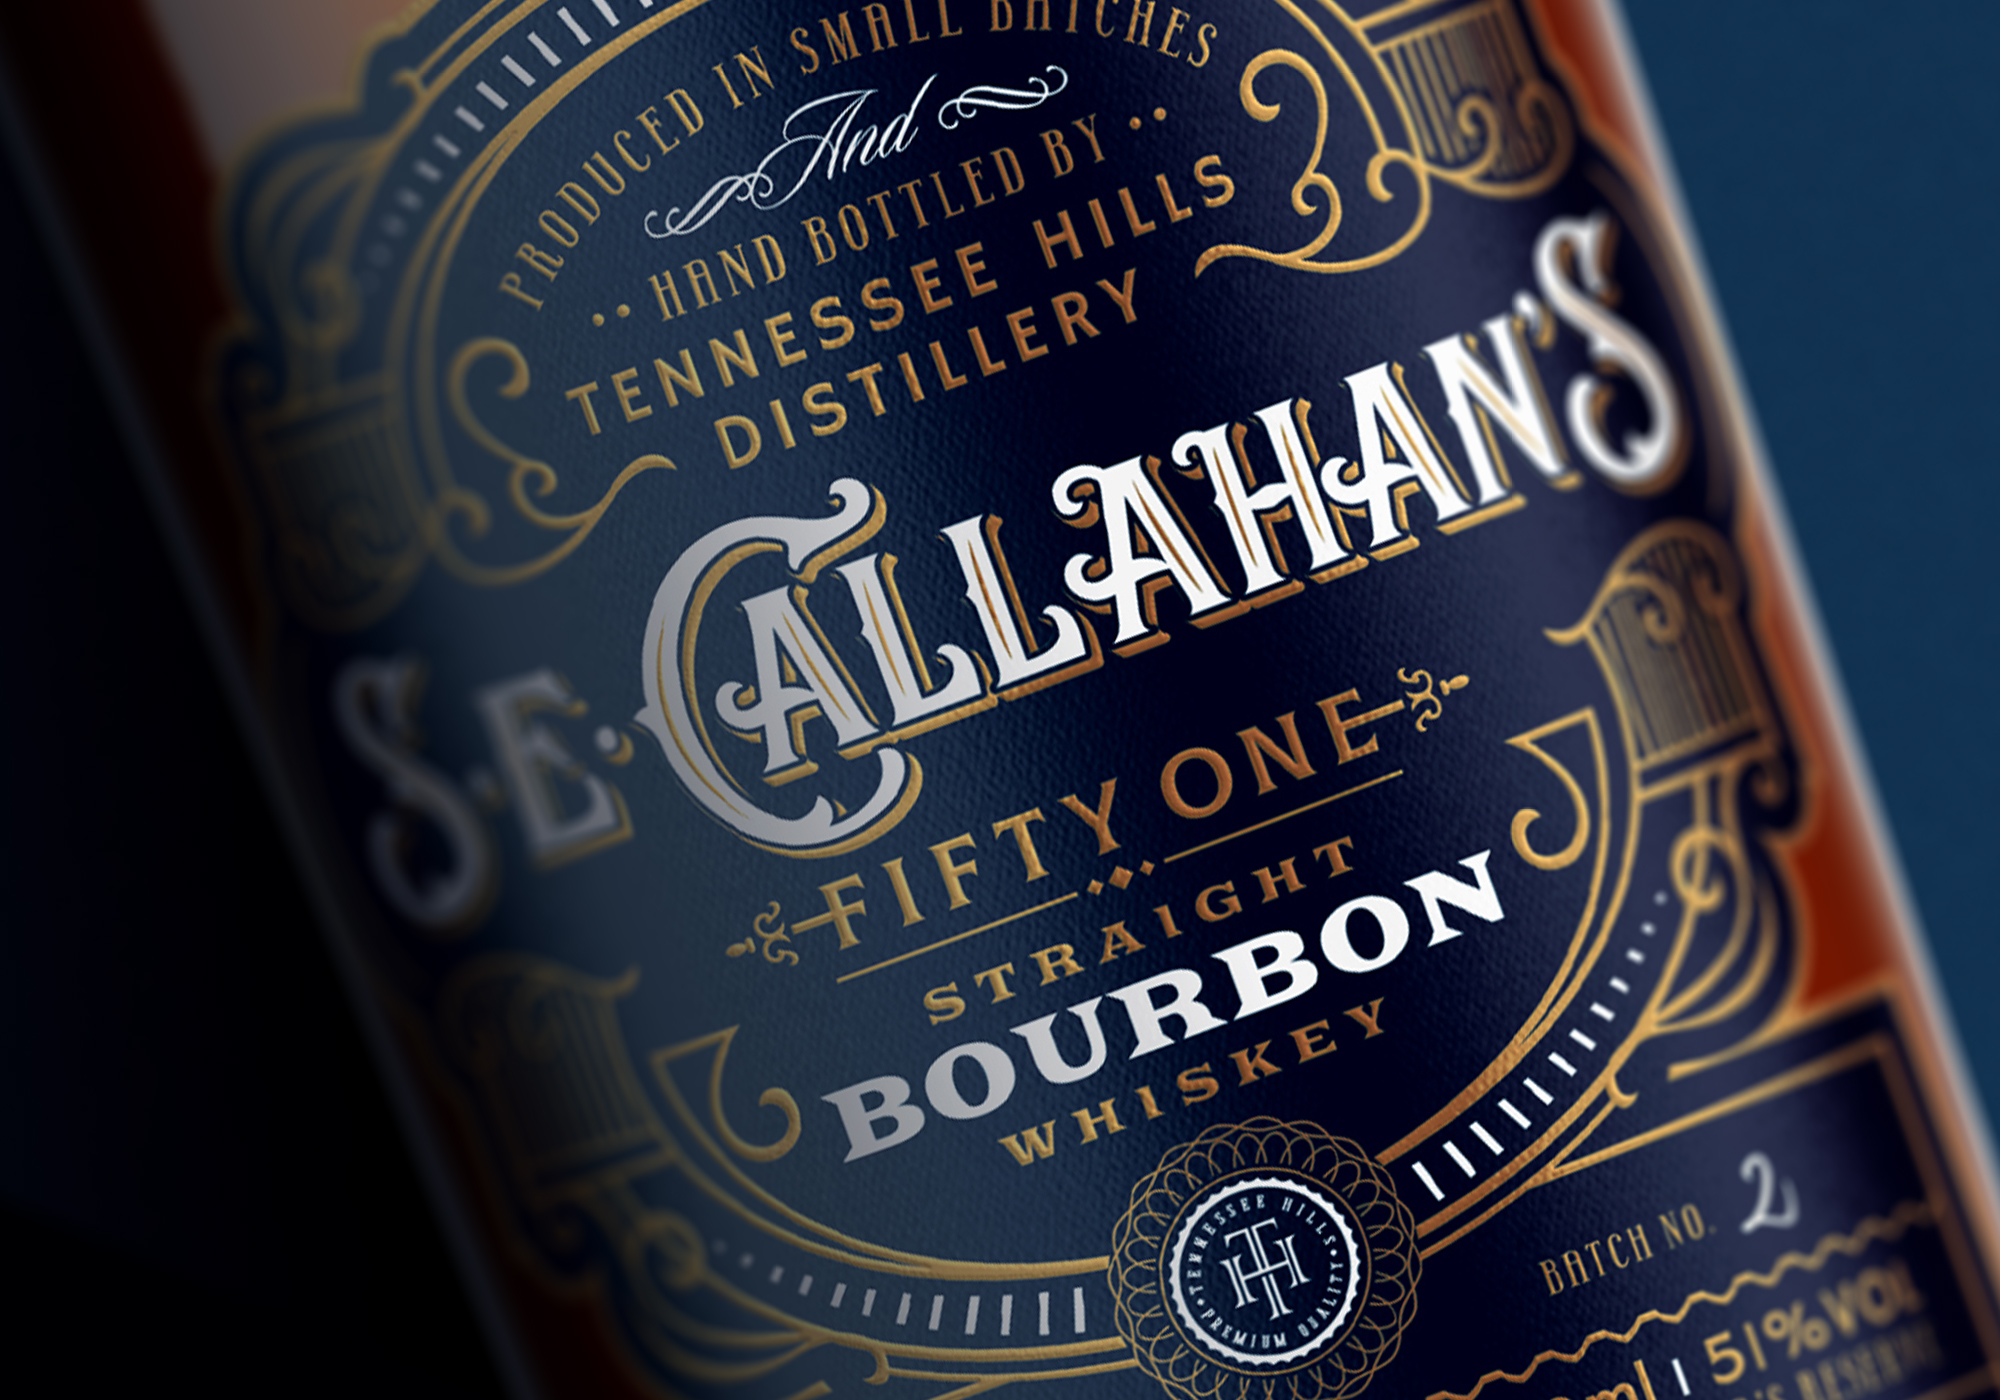 Widakk Design Packaging Labels for S.E.Callahan's Straight Bourbon Whiskey